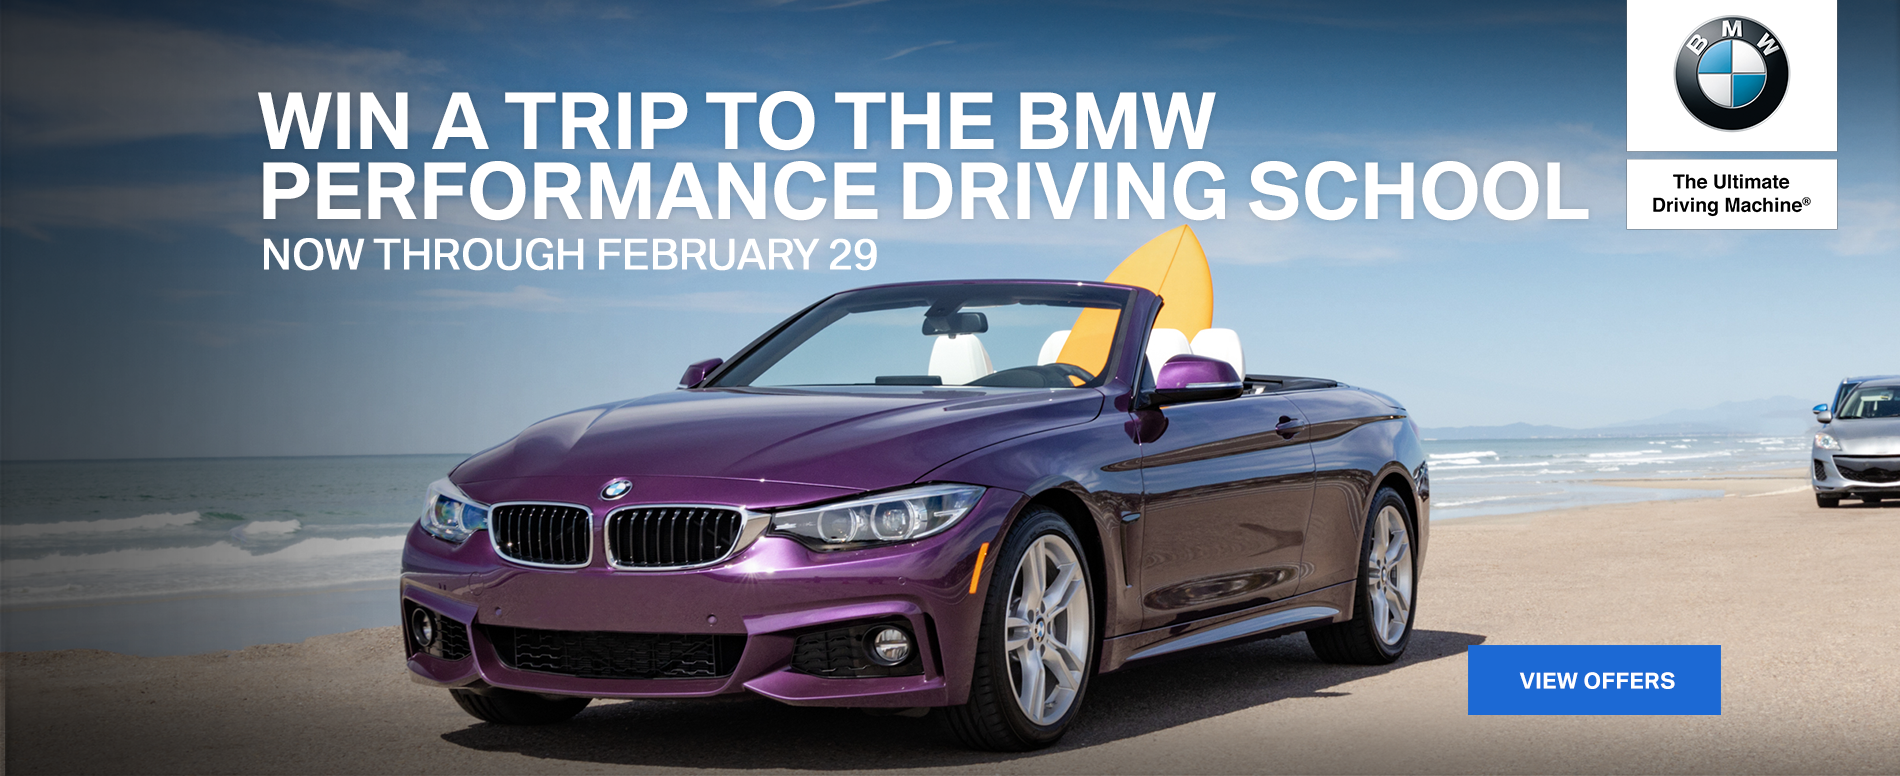 Win a trip to the BMW Performance Driving School